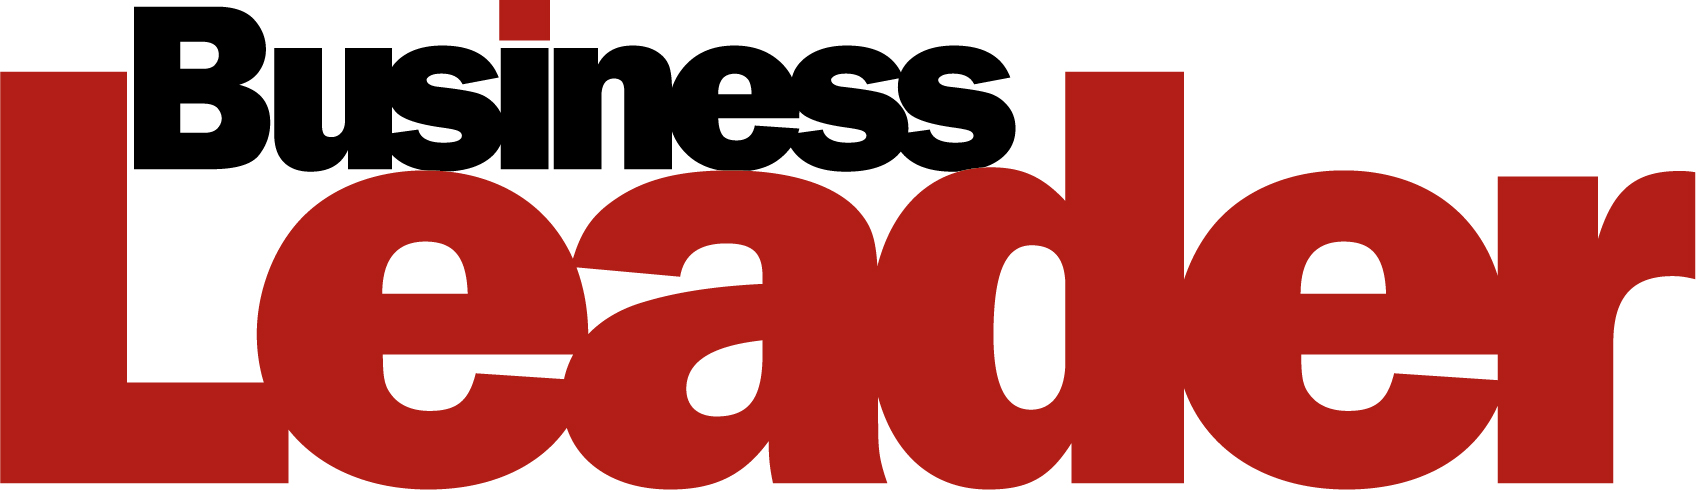 2019 Business Leader Logo.jpg